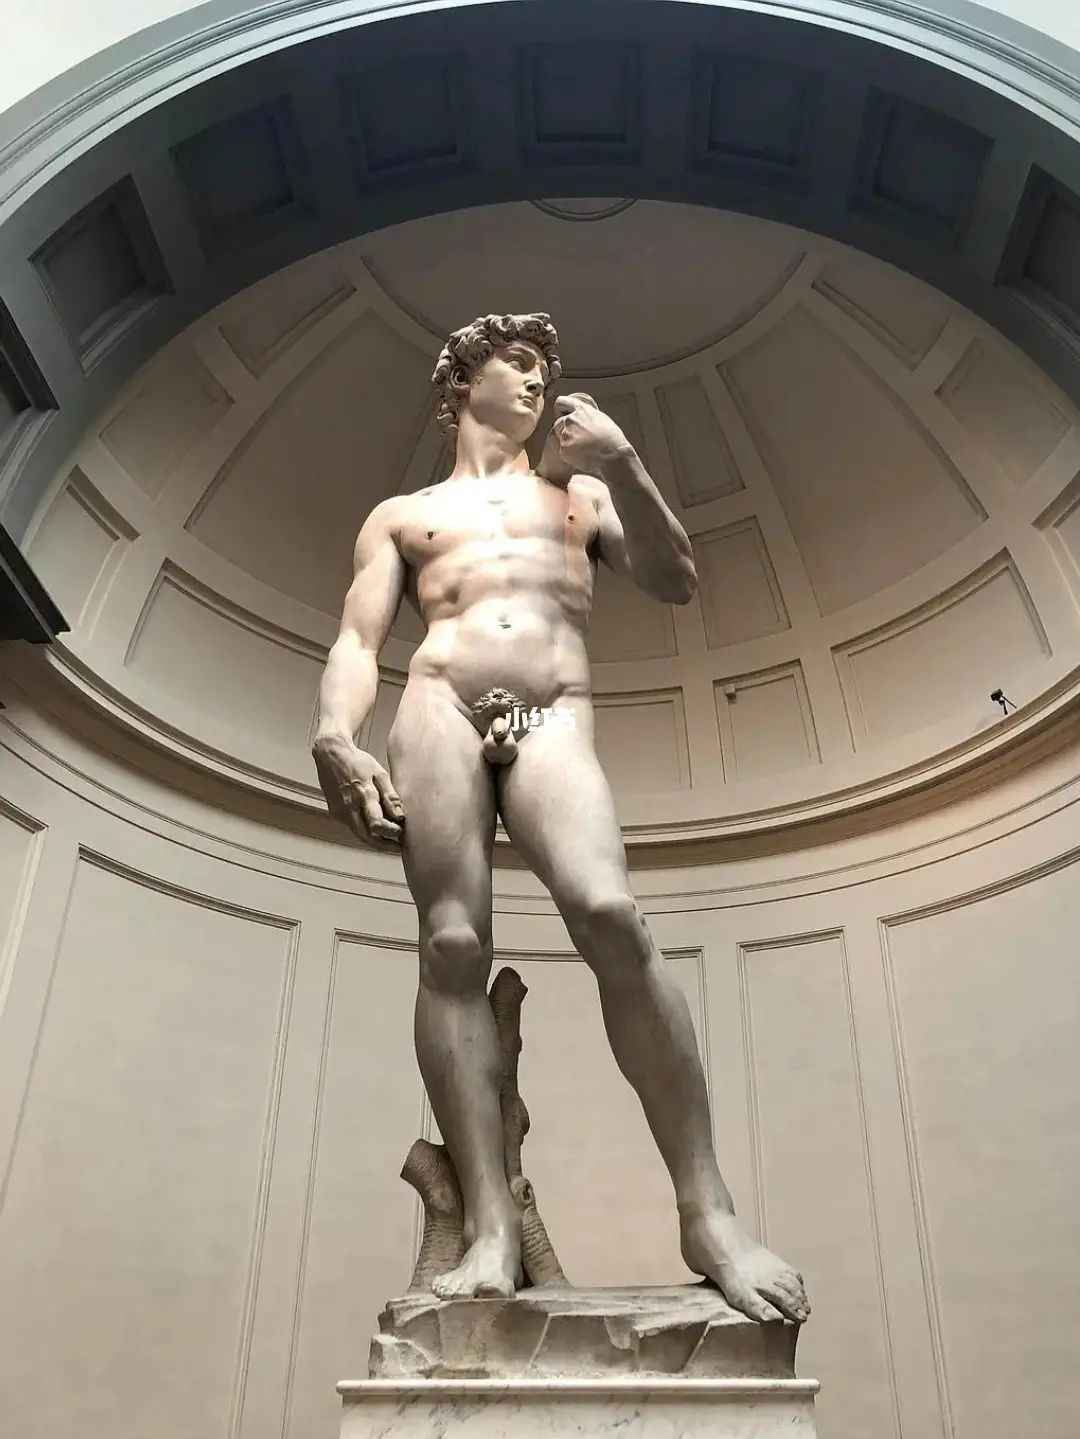 What is the statue of David meaning